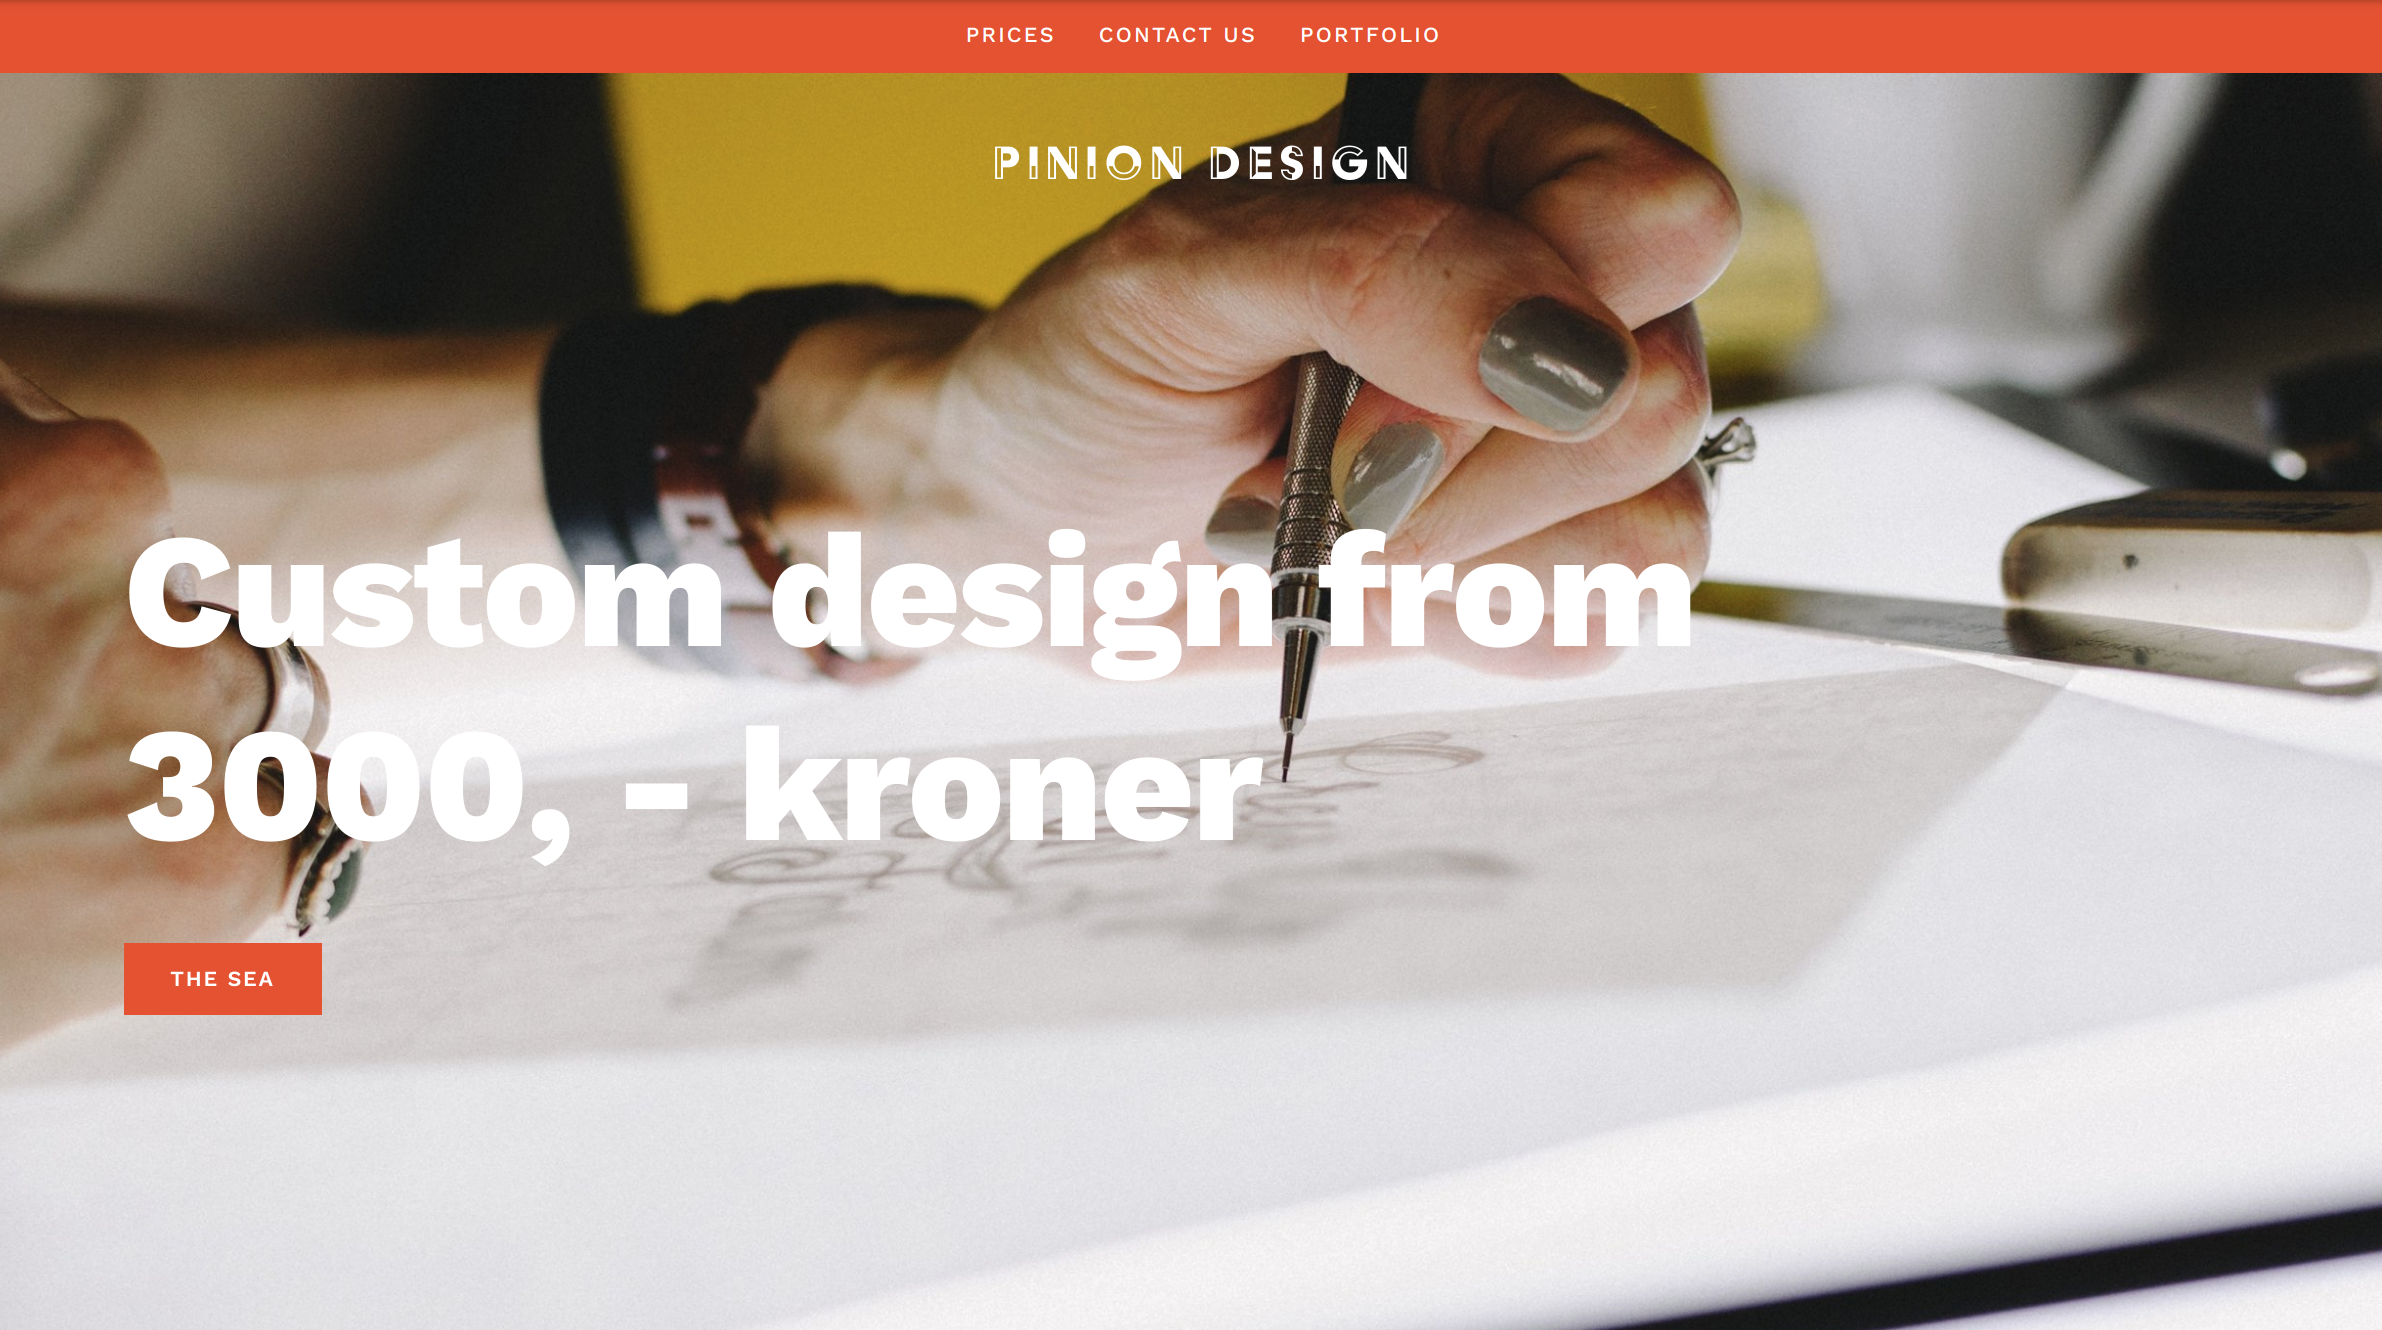 piniondesign.png